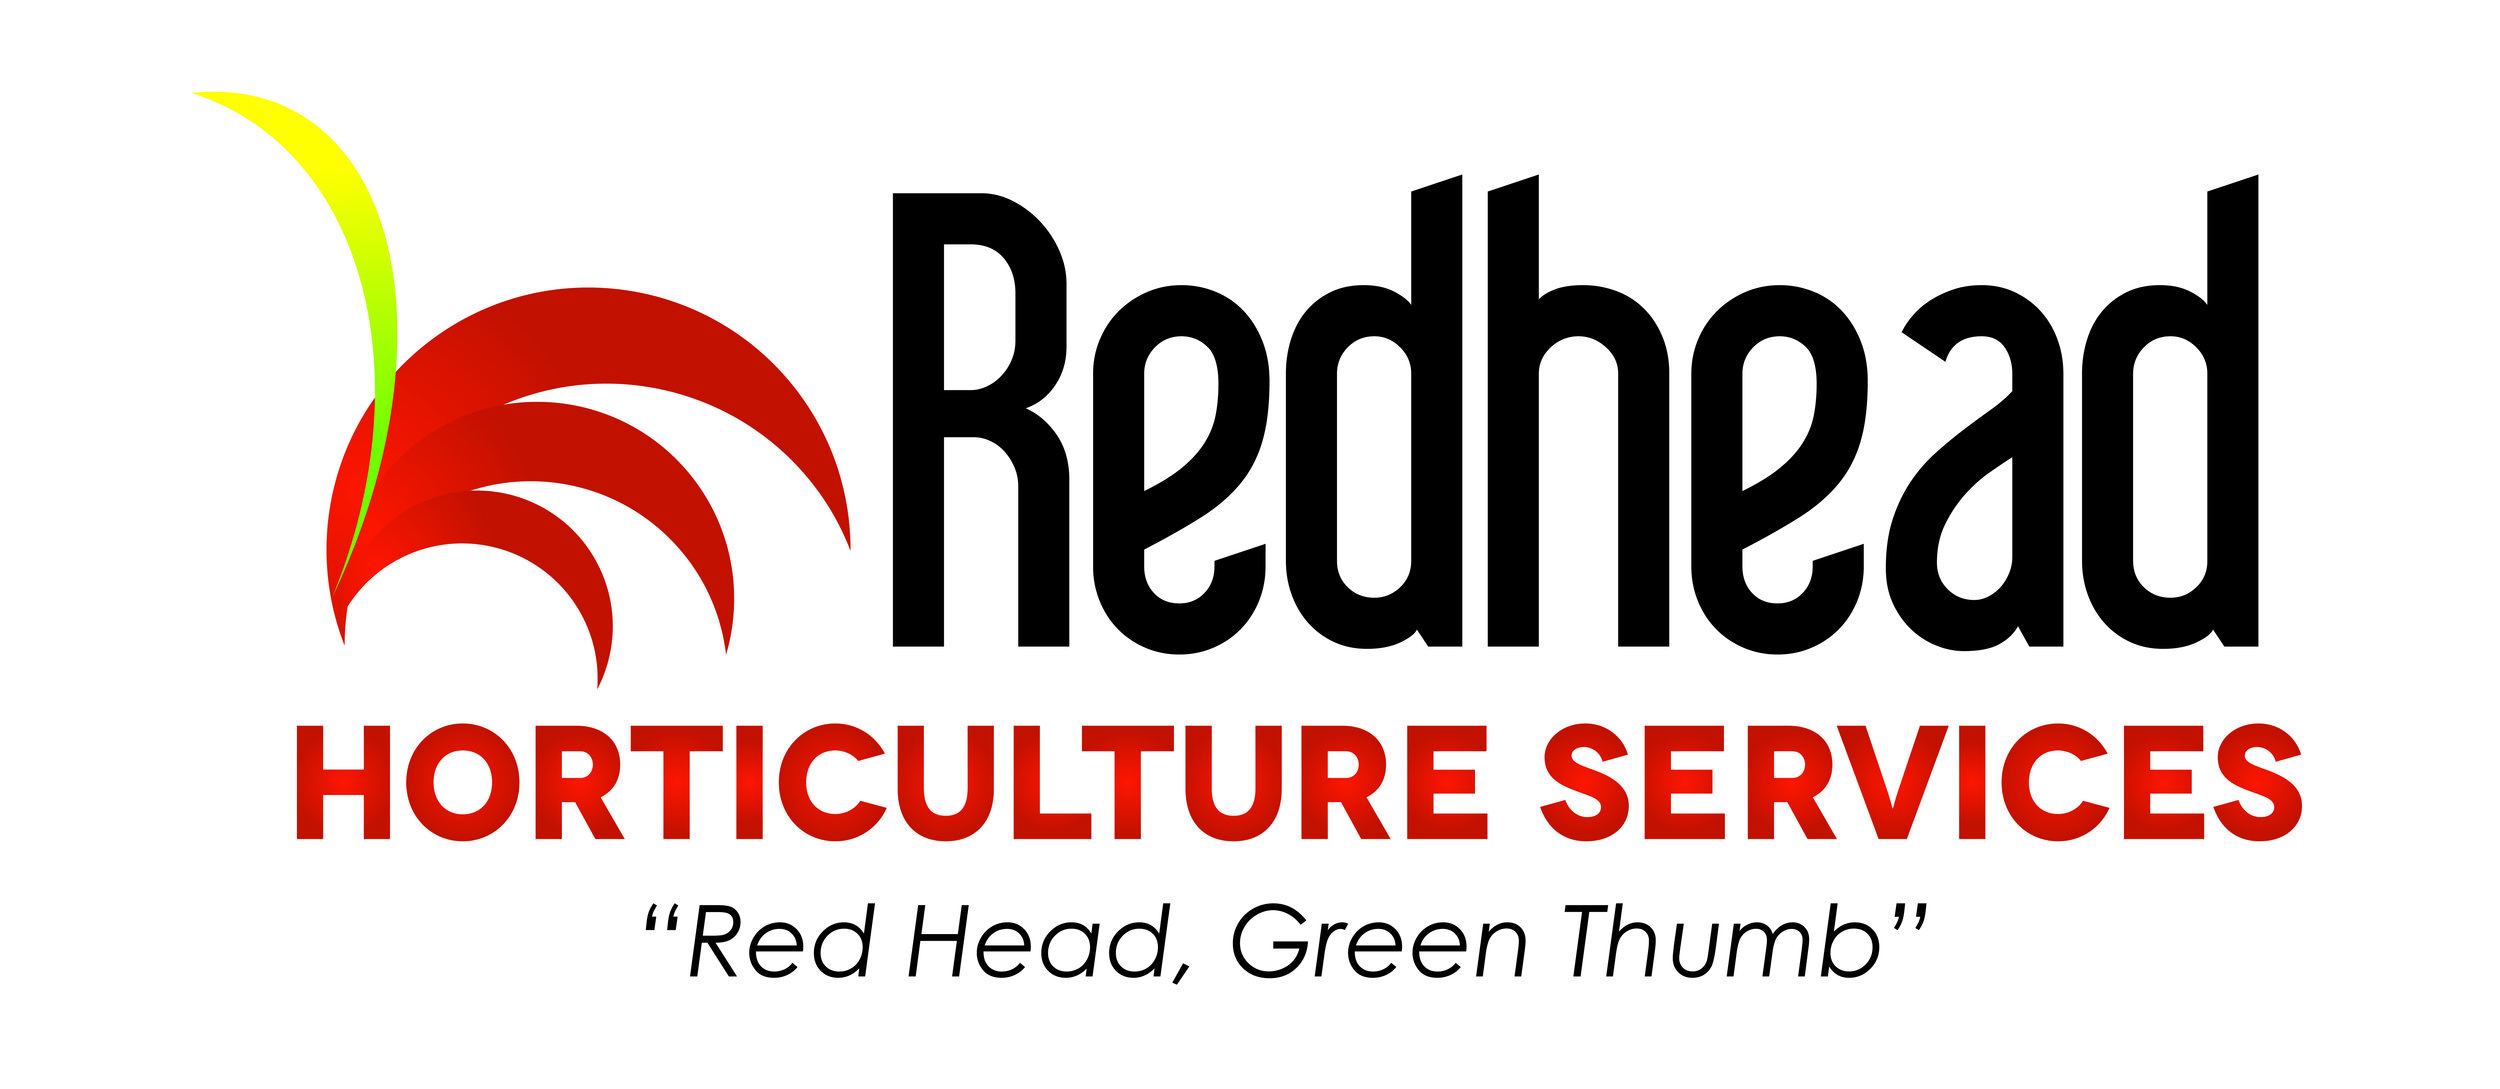 Red Head Logo.jpg